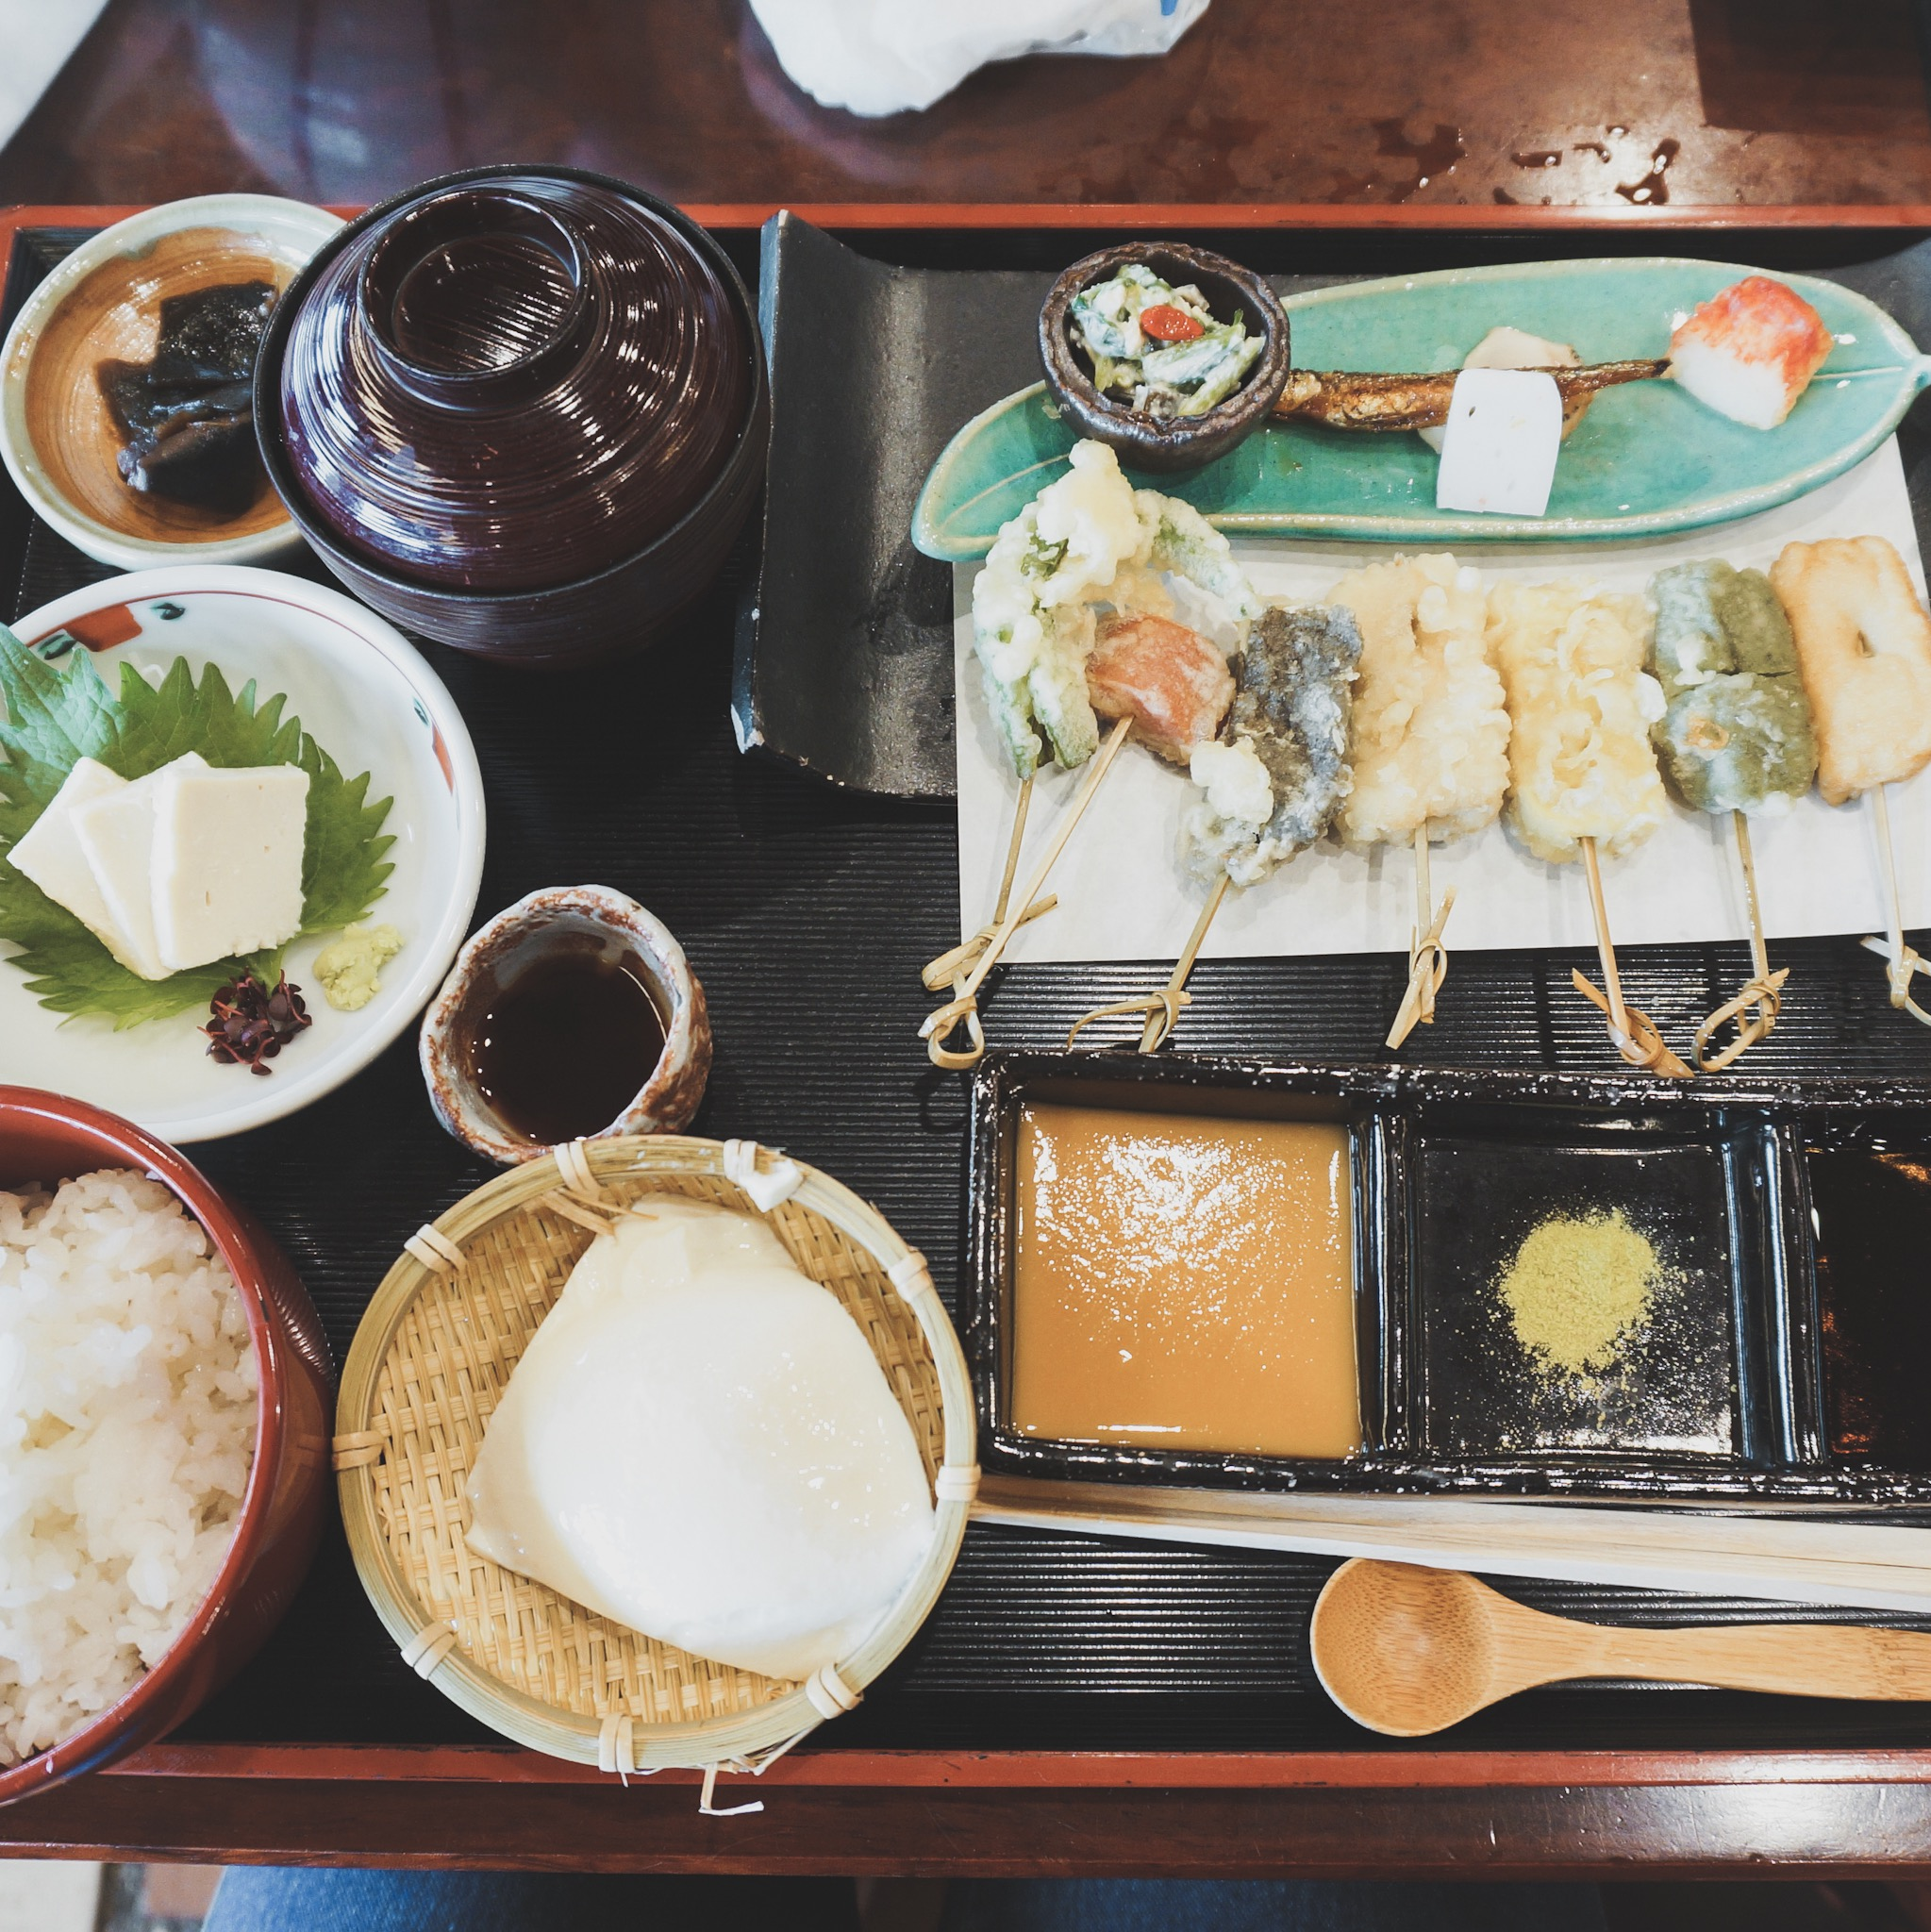 Junsei Okabeya (B6) - One of the foods Kyoto is known for is tofu, and there are a number of restaurants specializing in full meals built around it. Junsei Okabeya, tucked into a quiet nook on a busy street, is one of them.